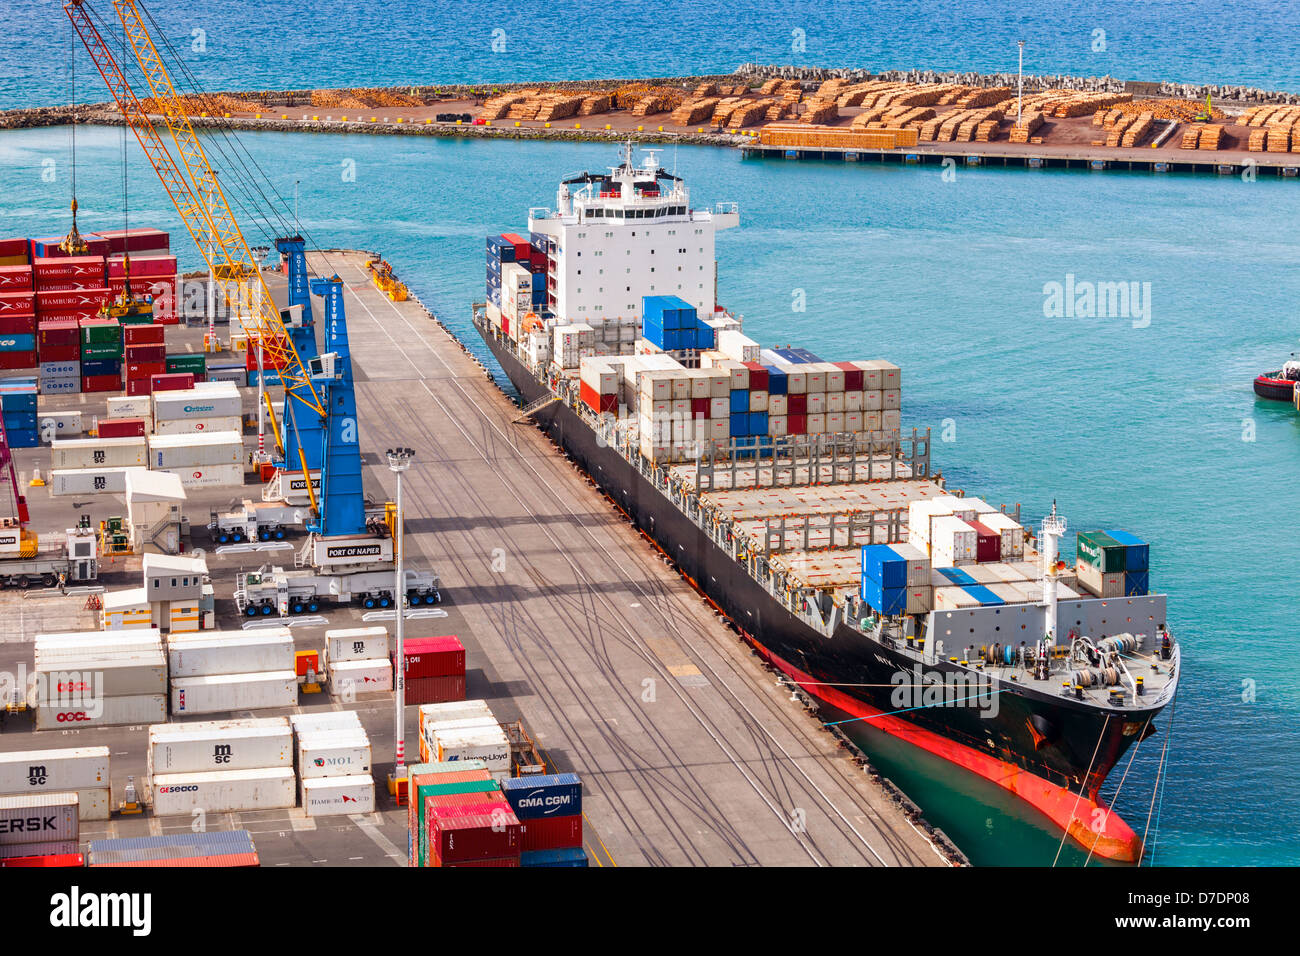 Container ship NYK Lyttelton at Napier Port, Hawke's Bay, New Zealand. Lots of containers on the dock... - Stock Image